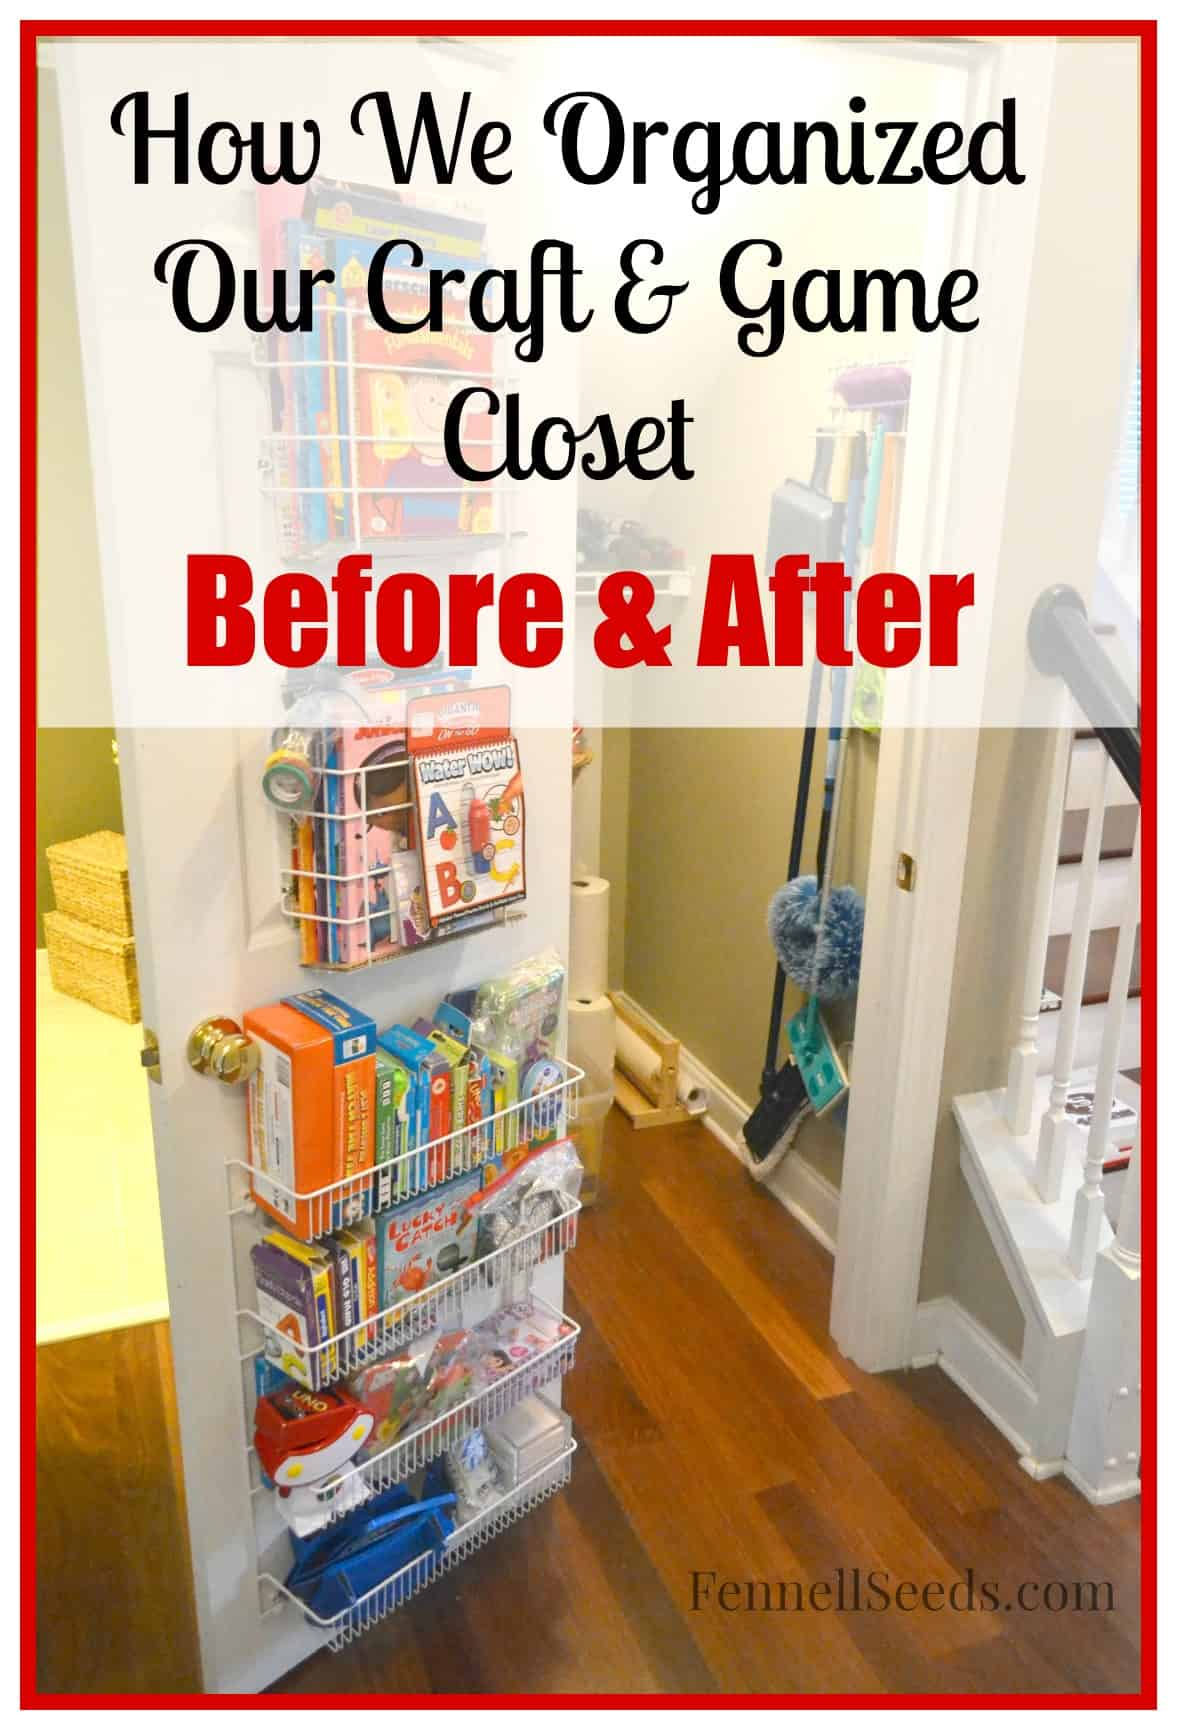 How We Organized our Craft and Game Closet - Before & After